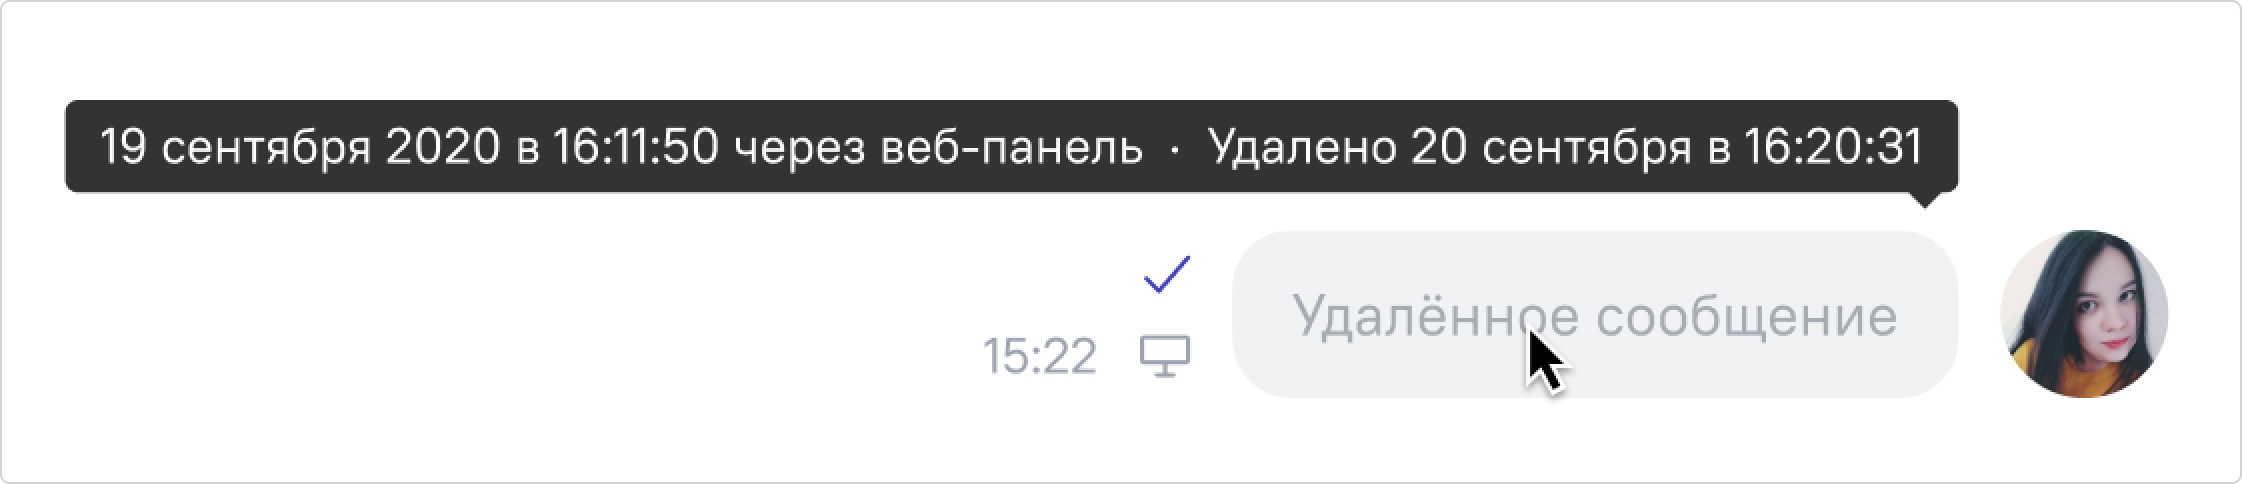 deleted-message